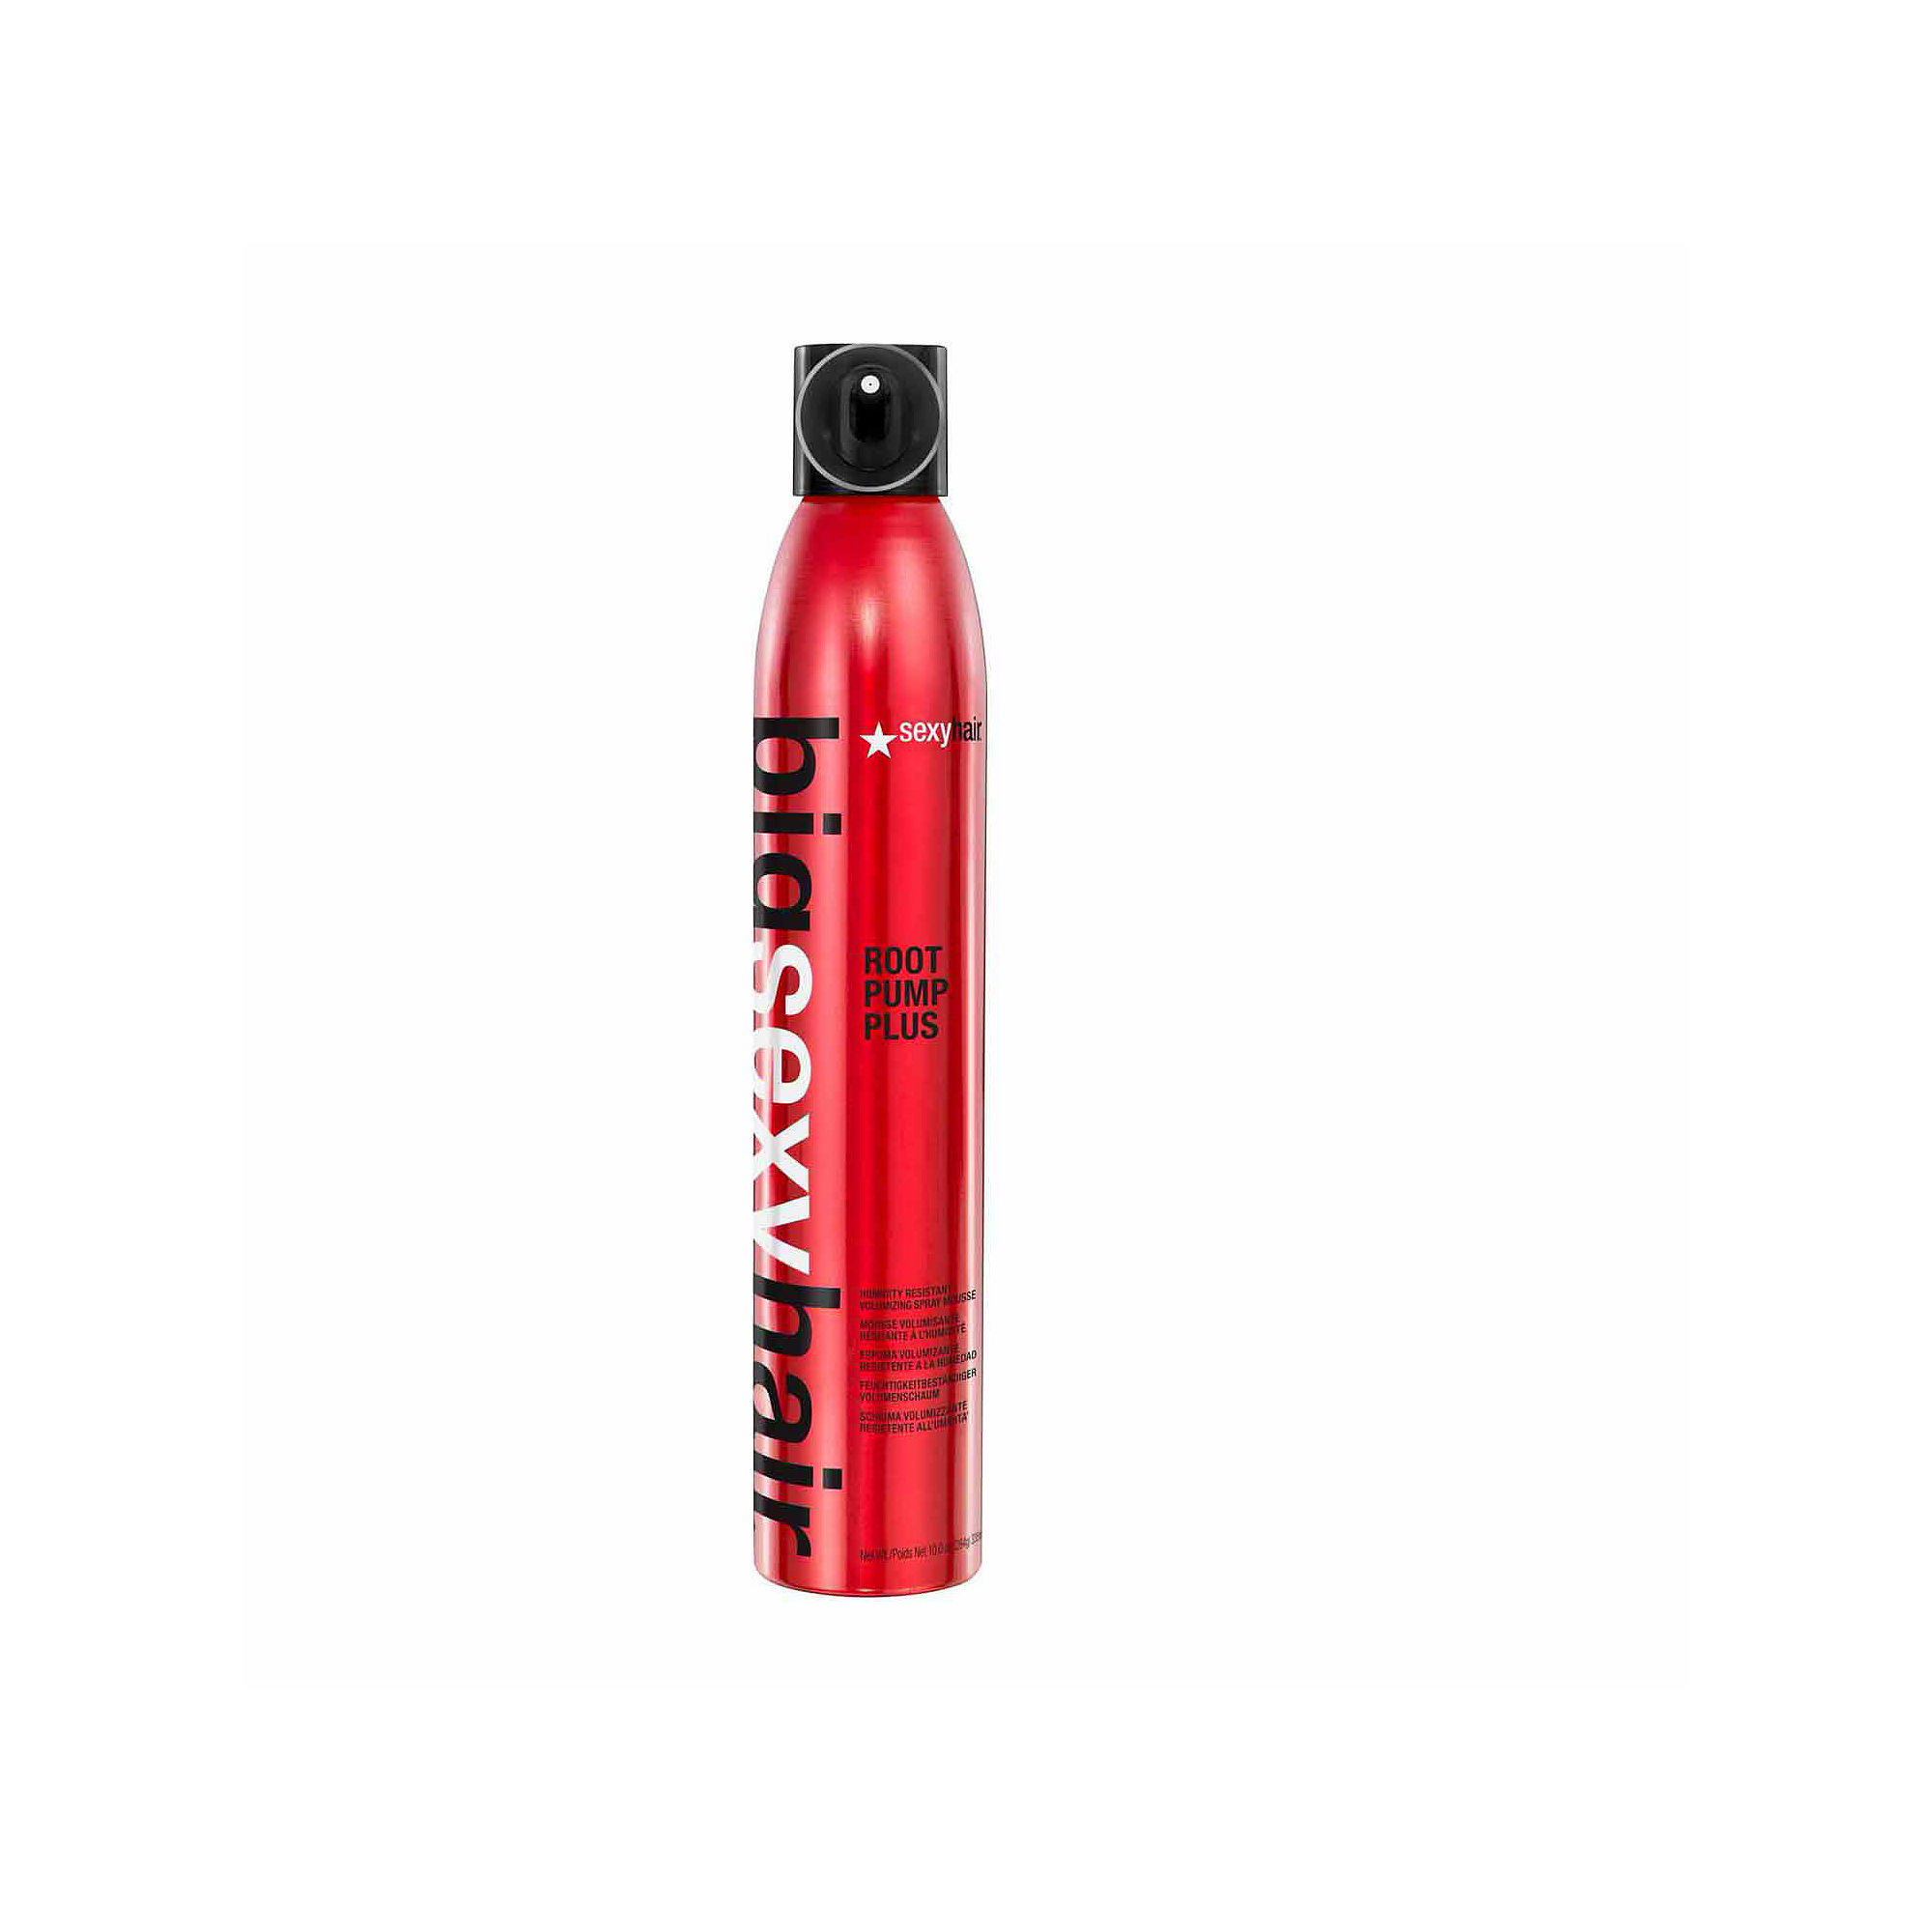 Big Sexy Hair Root Pump Plus Spray Mousse - 10.6 oz.